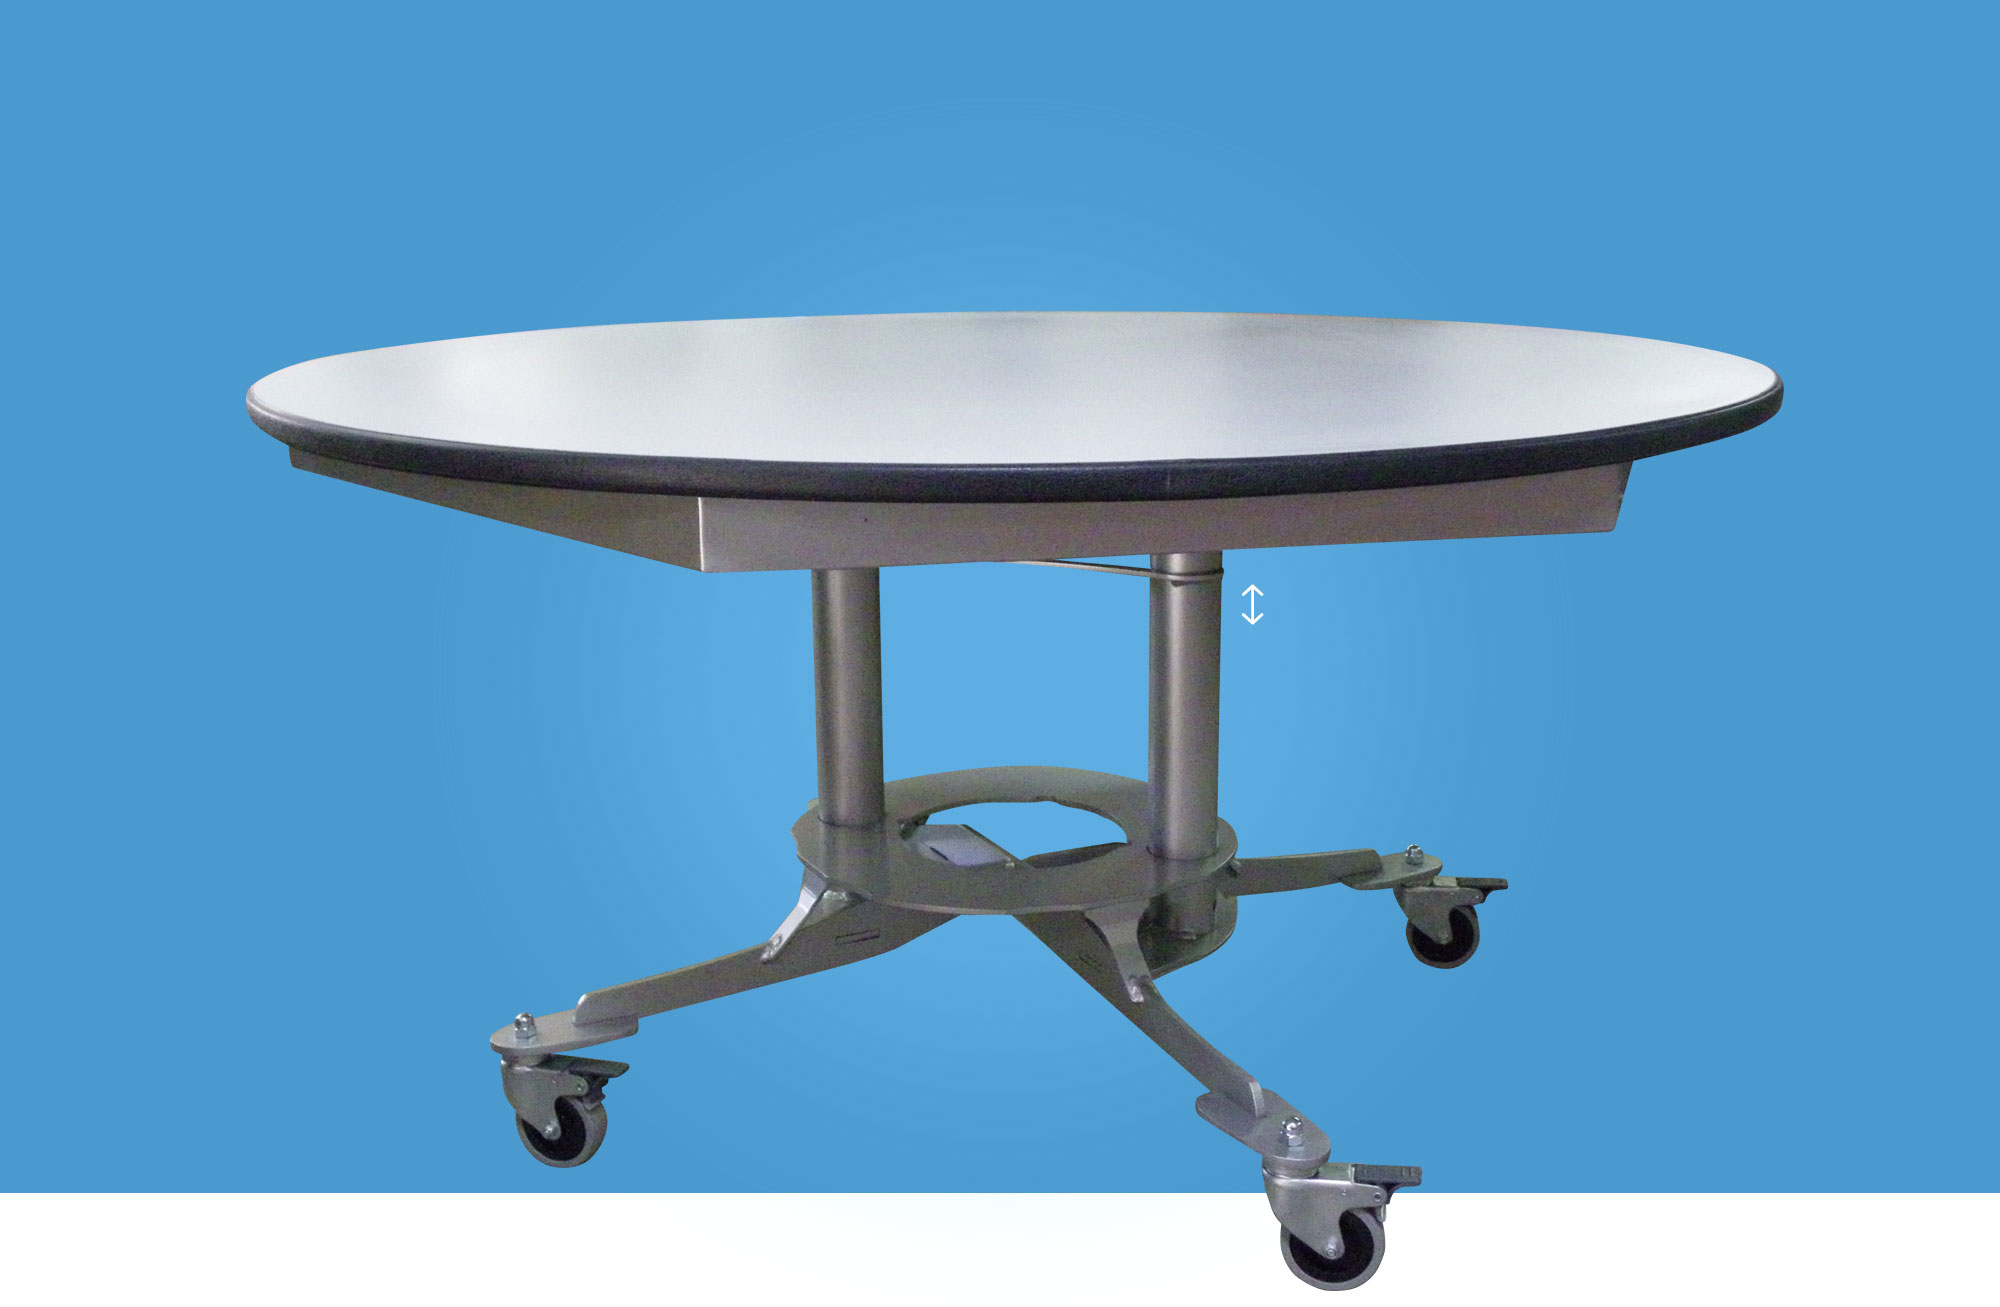 Hephaïstos mobilier ergonomique ouranos table ergonomique